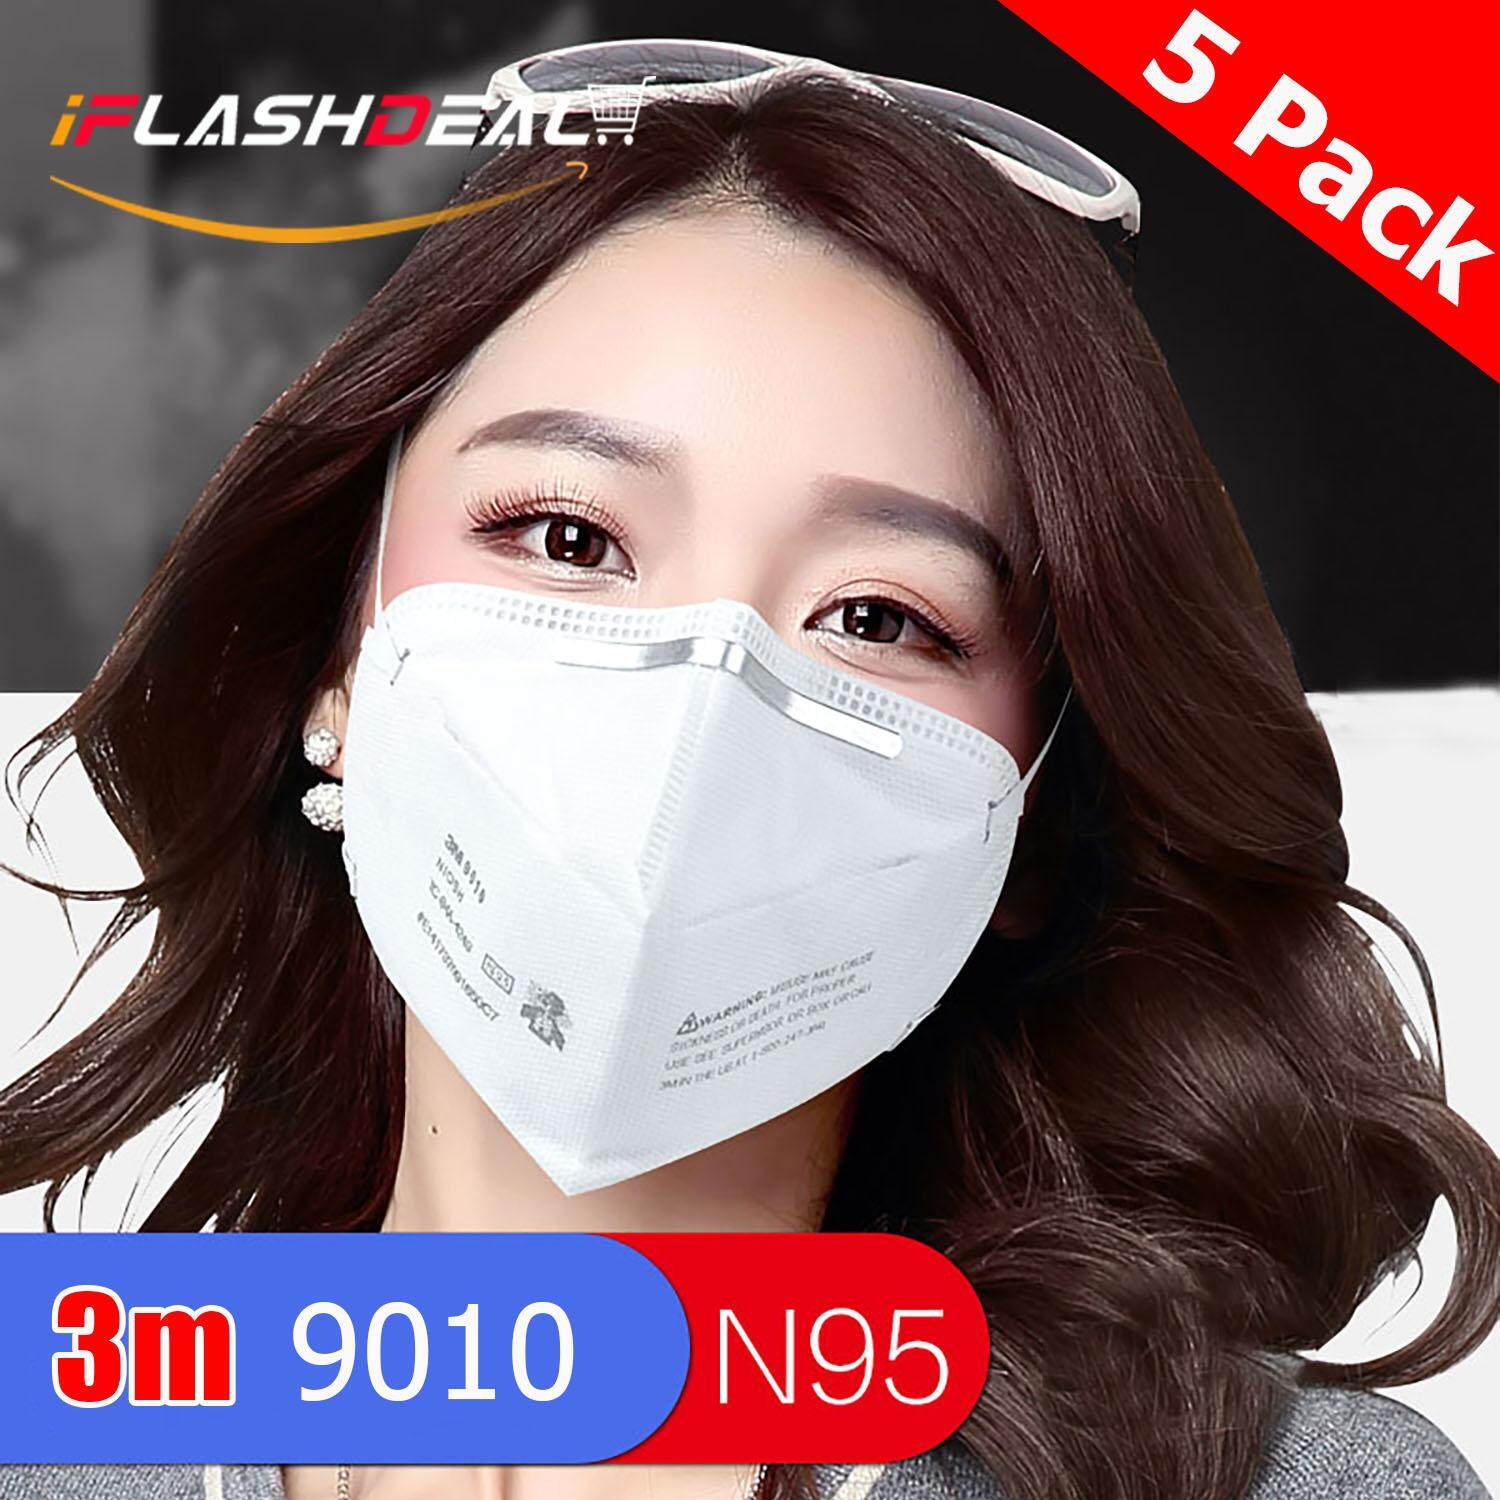 Iflashdeal 3m Dust Mask 9010 N95 Mouth Face Mask Particulate Disposable Respirator Cycling Anti Haze Mask 3d Anti-Fog Anti Pm 2.5 Dust Face Mask Folding Respirator By Iflashdeal.